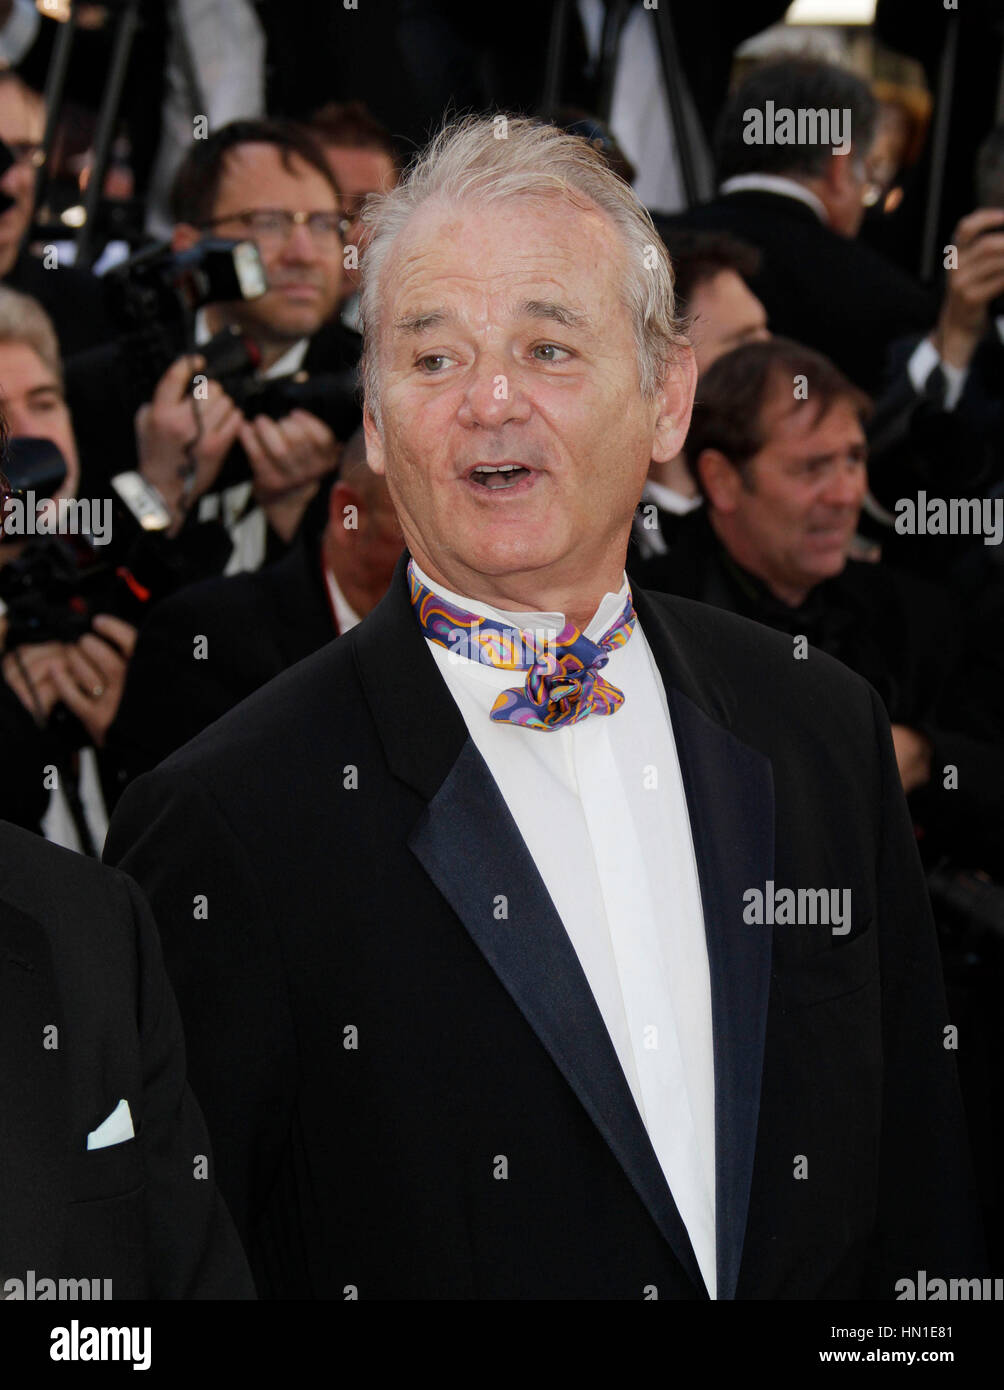 Bill Murray arrives at the opening night premiere of 'Moonrise Kingdom' at the 65th Cannes Film Festival - Stock Image